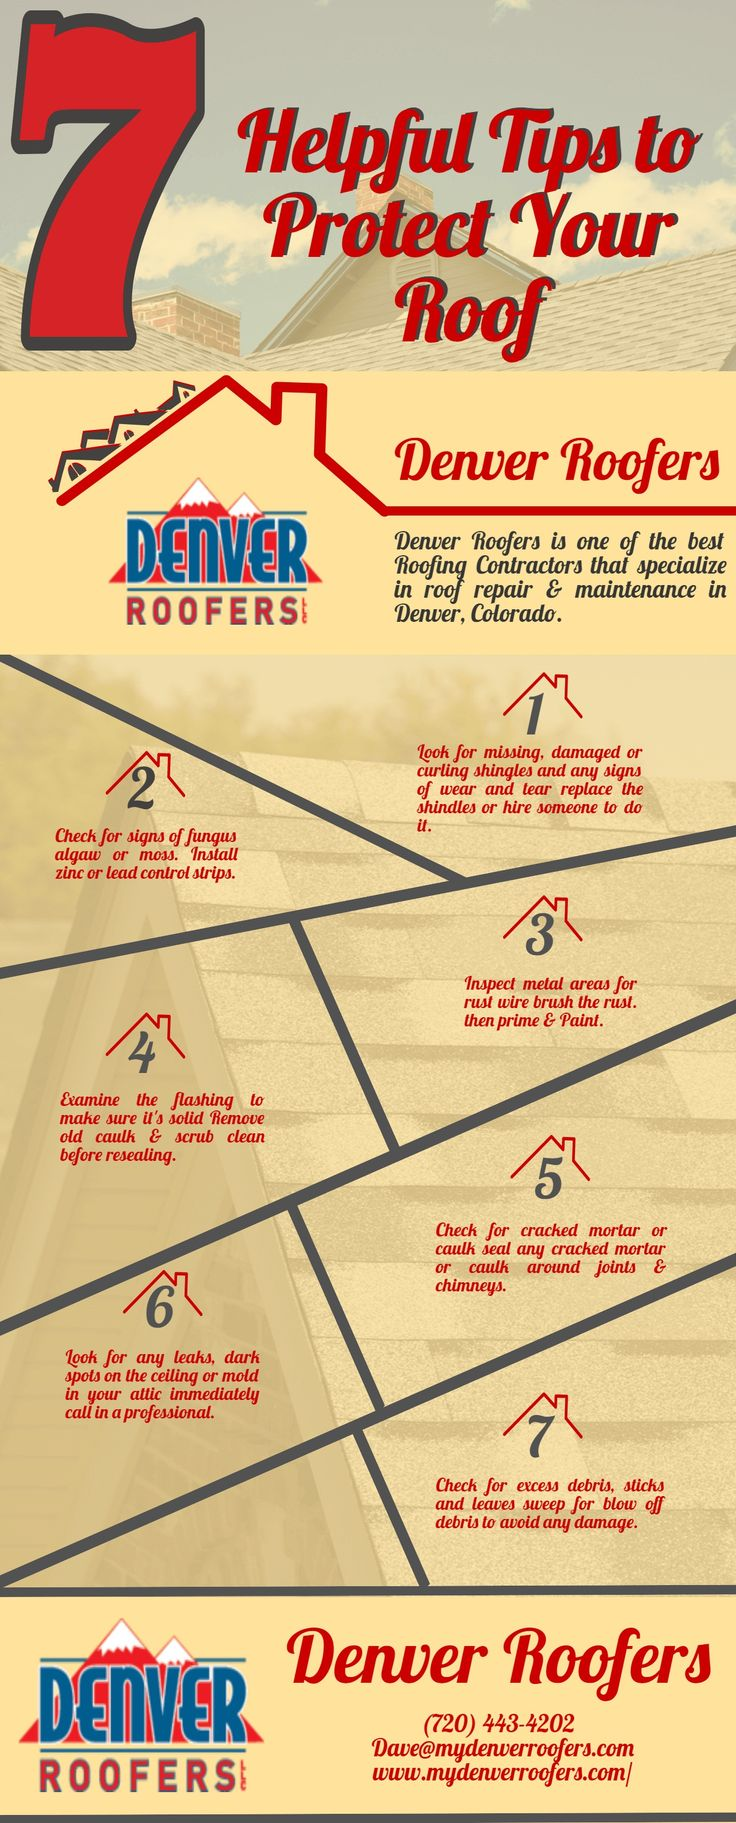 We Are A Top Rated Denver Roofing Company With An A+ Rating With The Denver  Better